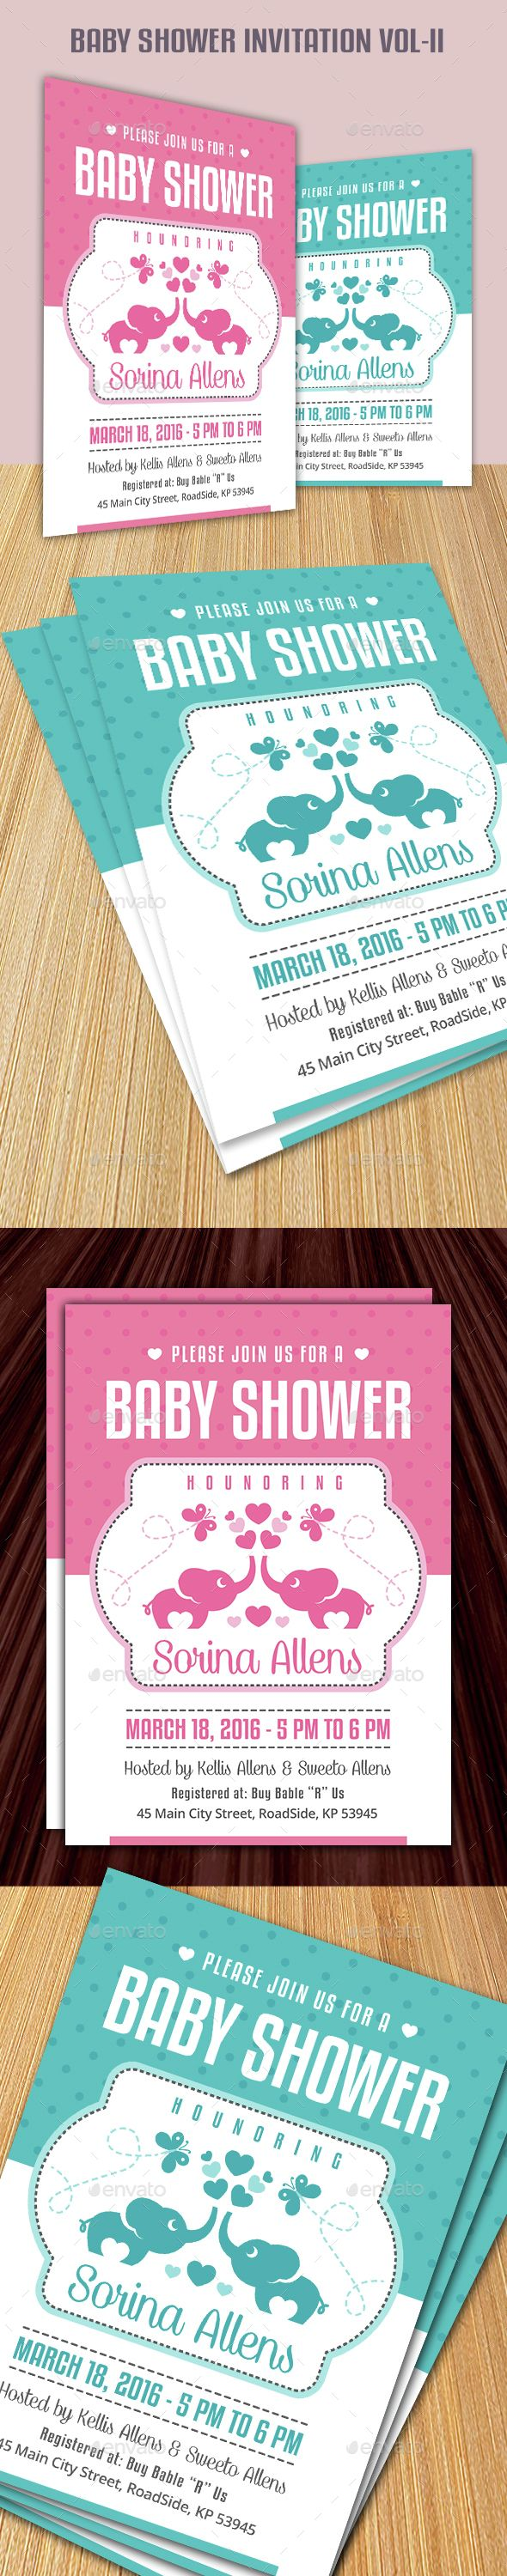 best images about flyer and brochure white baby shower invitation vol ii